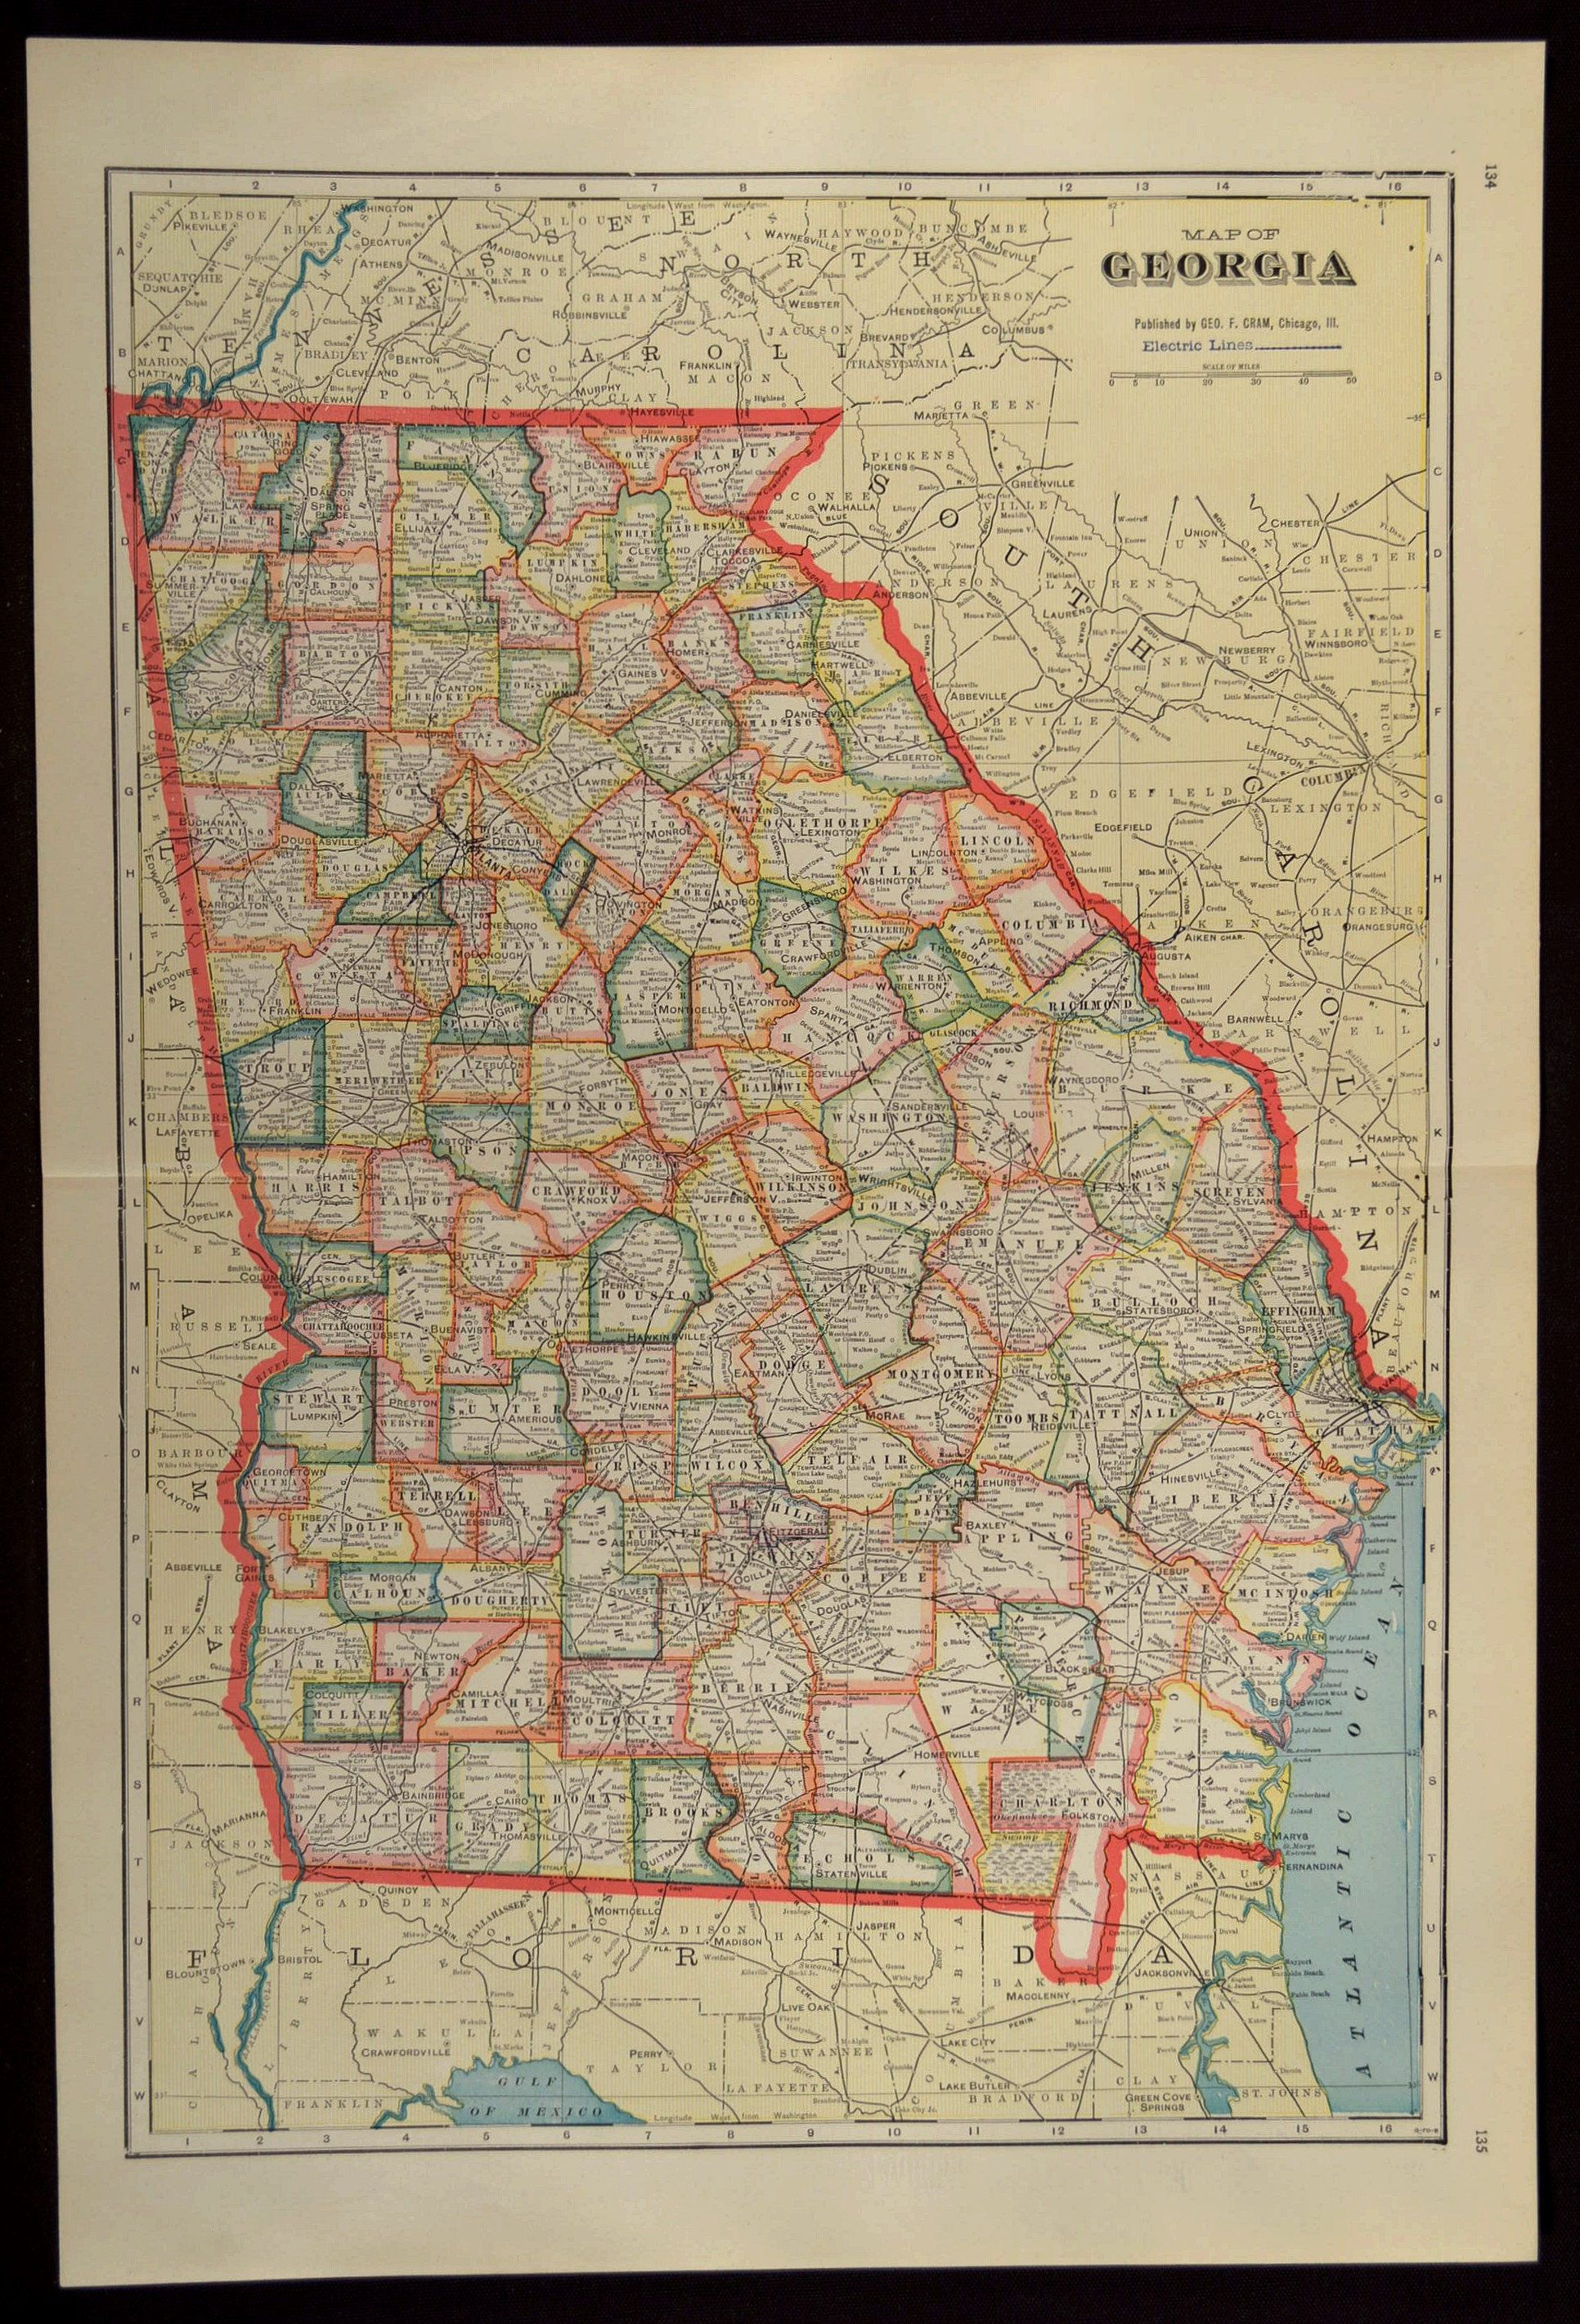 Georgia Map of Georgia Wall Decor Art LARGE Antique County ... on north georgia counties map, tn counties map, united states counties map, georgia airports map, georgia highway map, georgia river map, georgia city map, georgia fault line map, georgia area code map, griffin georgia map, georgia cities map, nebraska counties map, georgia colony map, georgia soil types map, georgia state map, georgia town map, georgia physical map, georgia region map, georgia 1700s, georgia europe map,